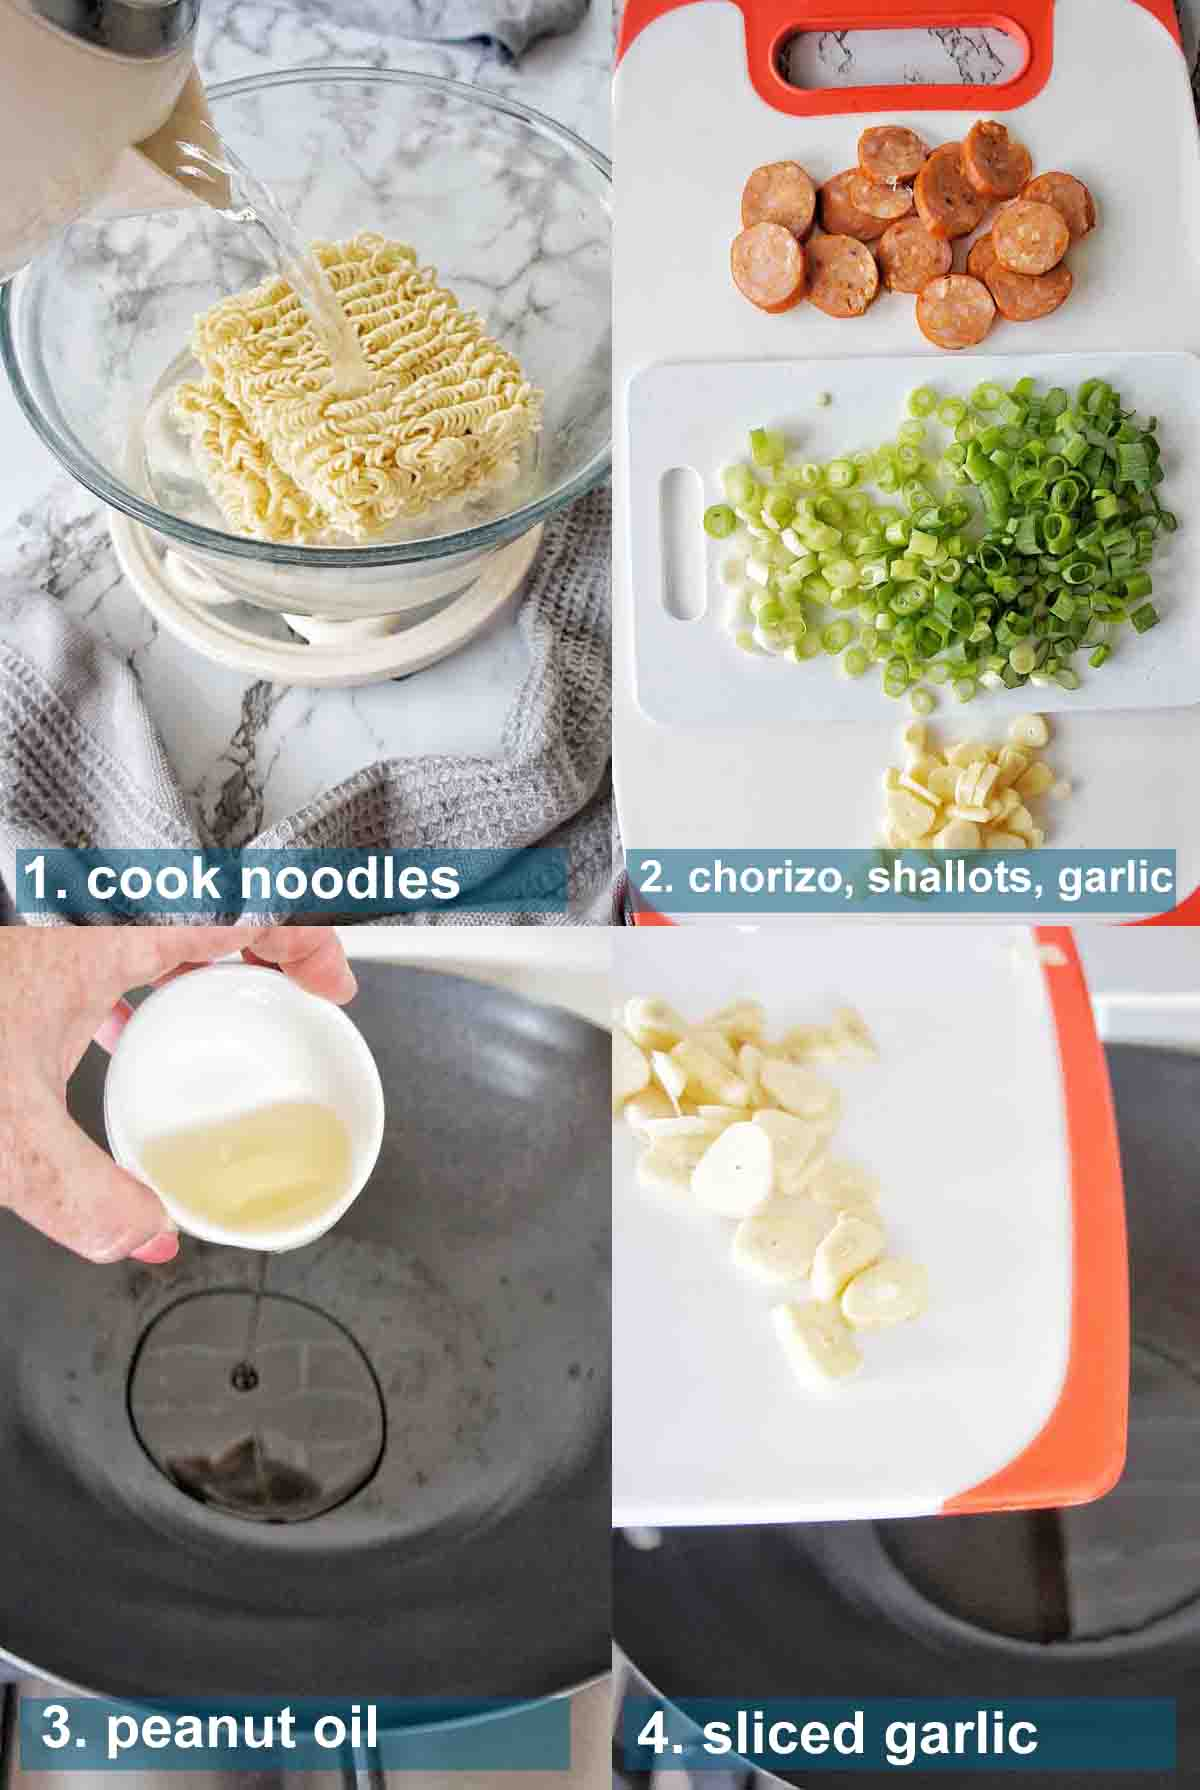 Hungover Noodles method 1 to 4 with text labels